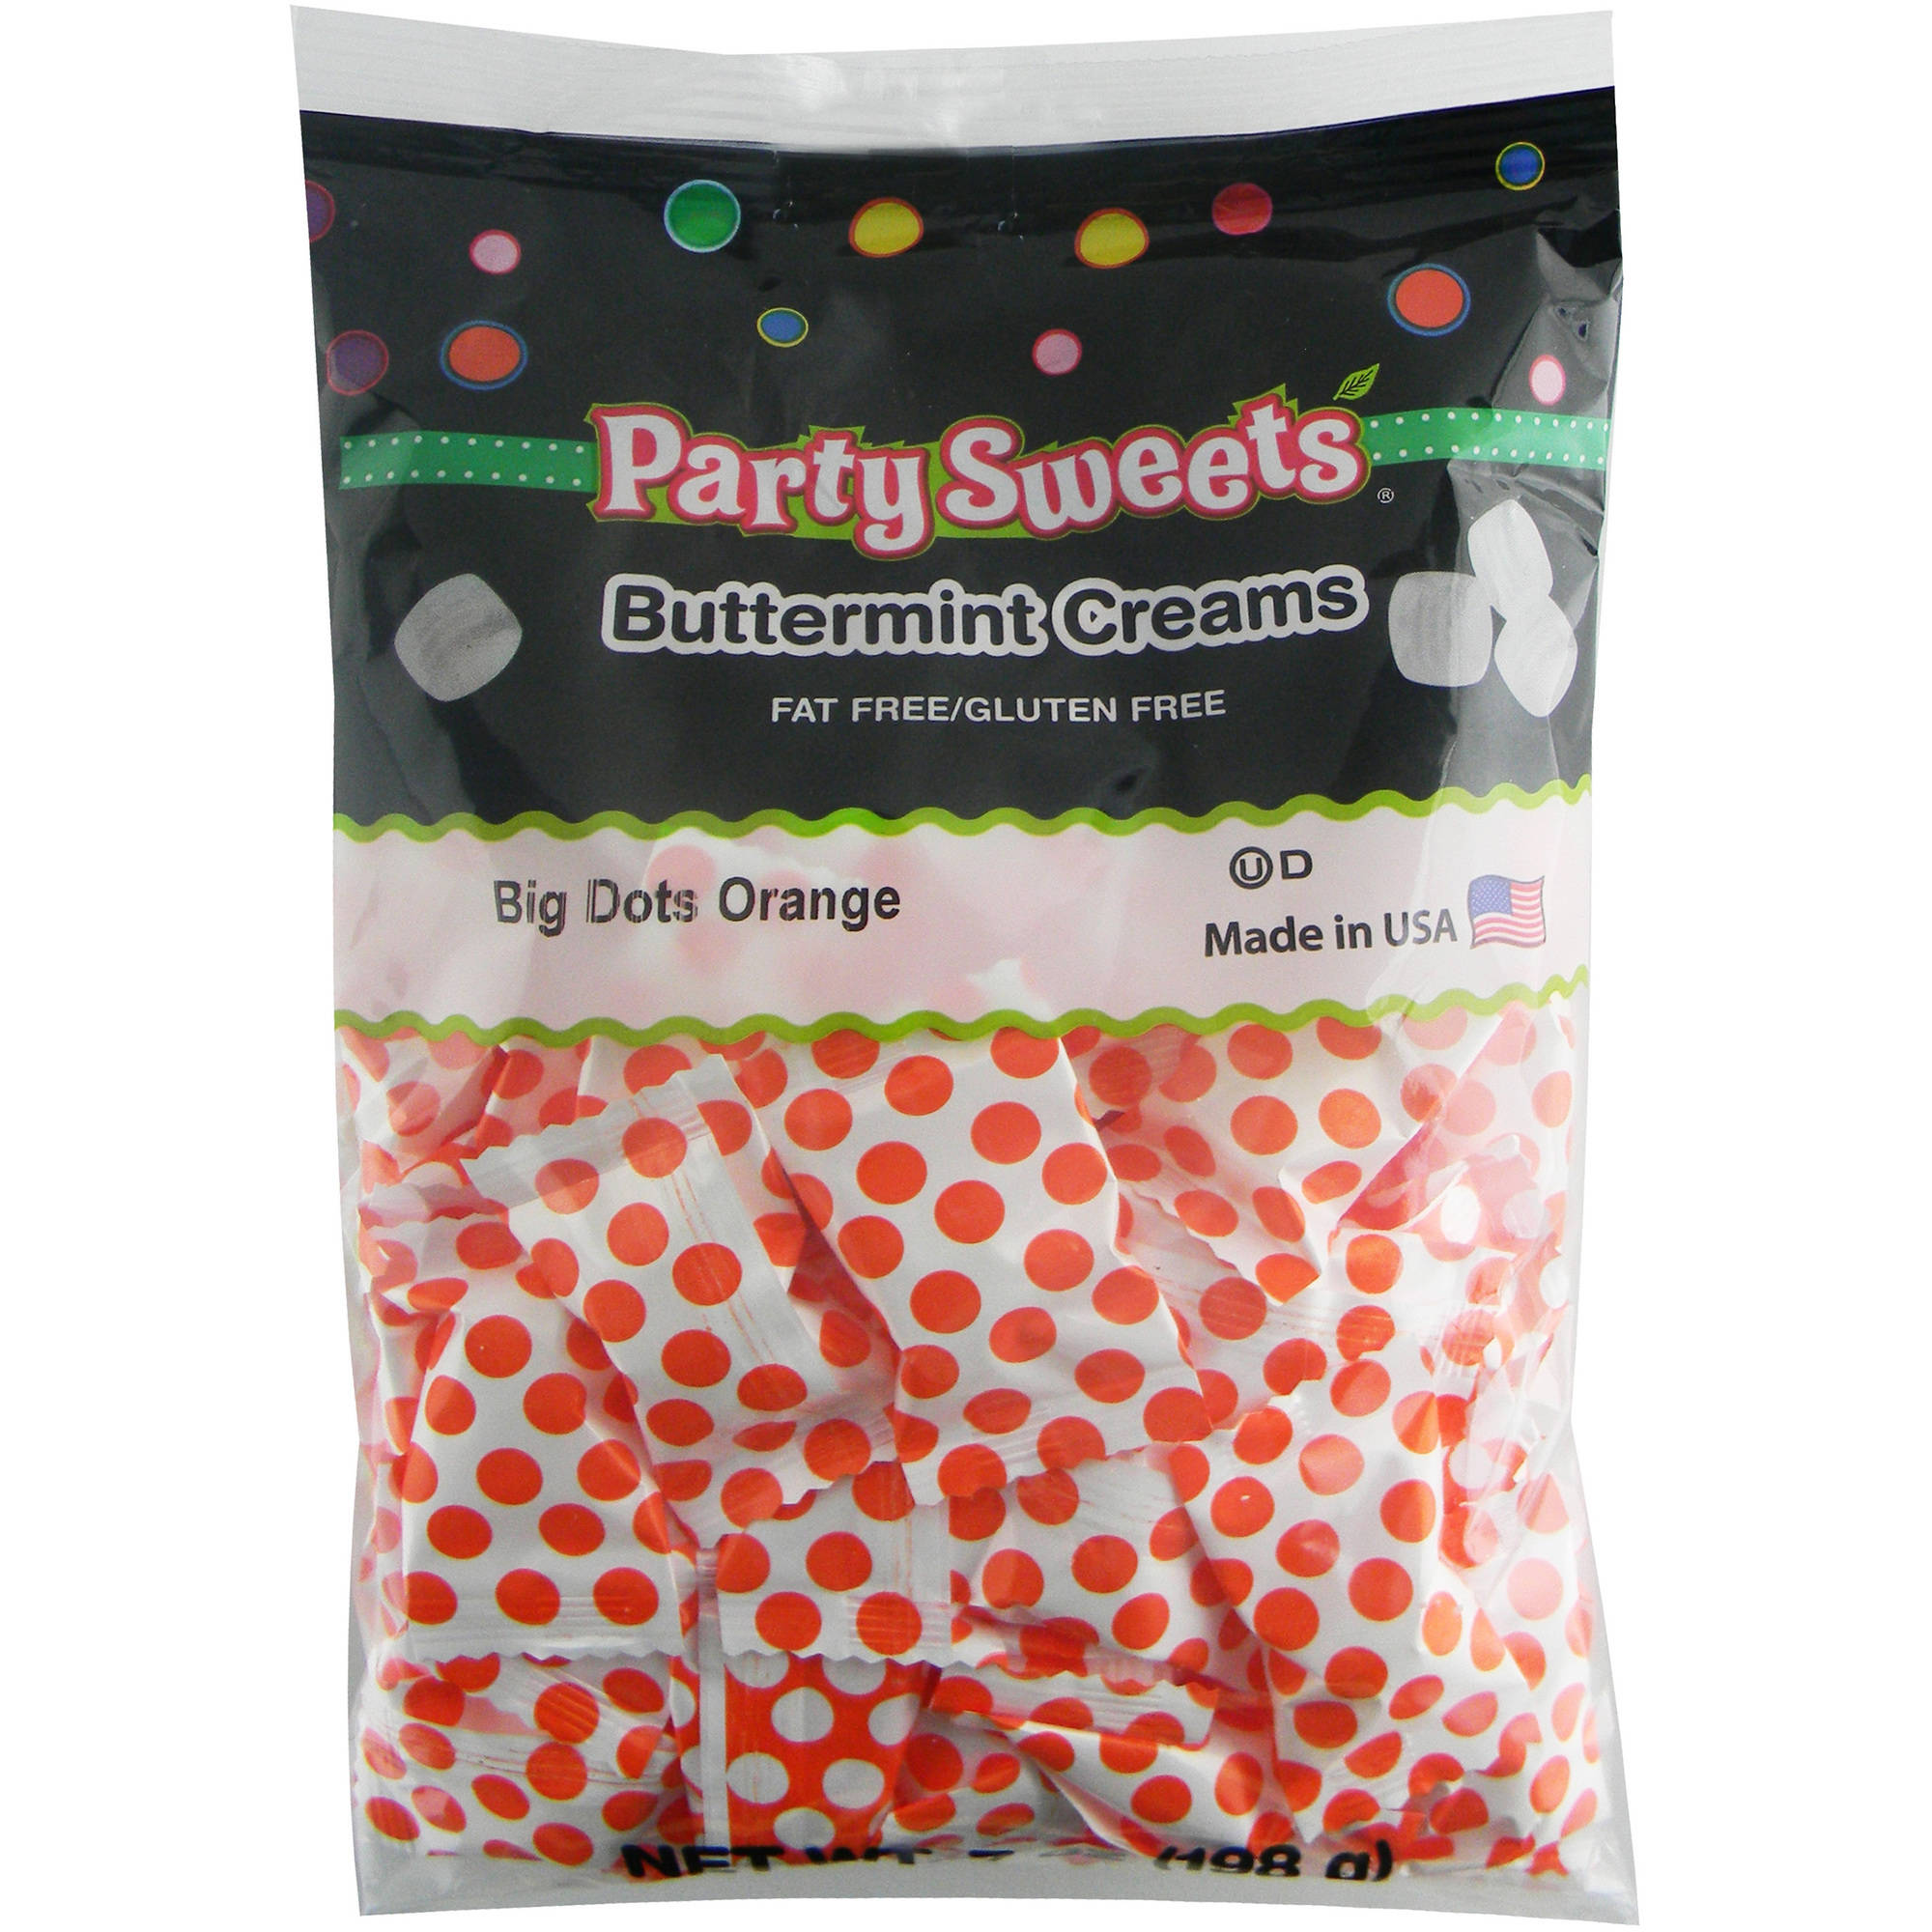 Party Sweets Big Dots Orange Buttermint Creams Candy, 7 oz